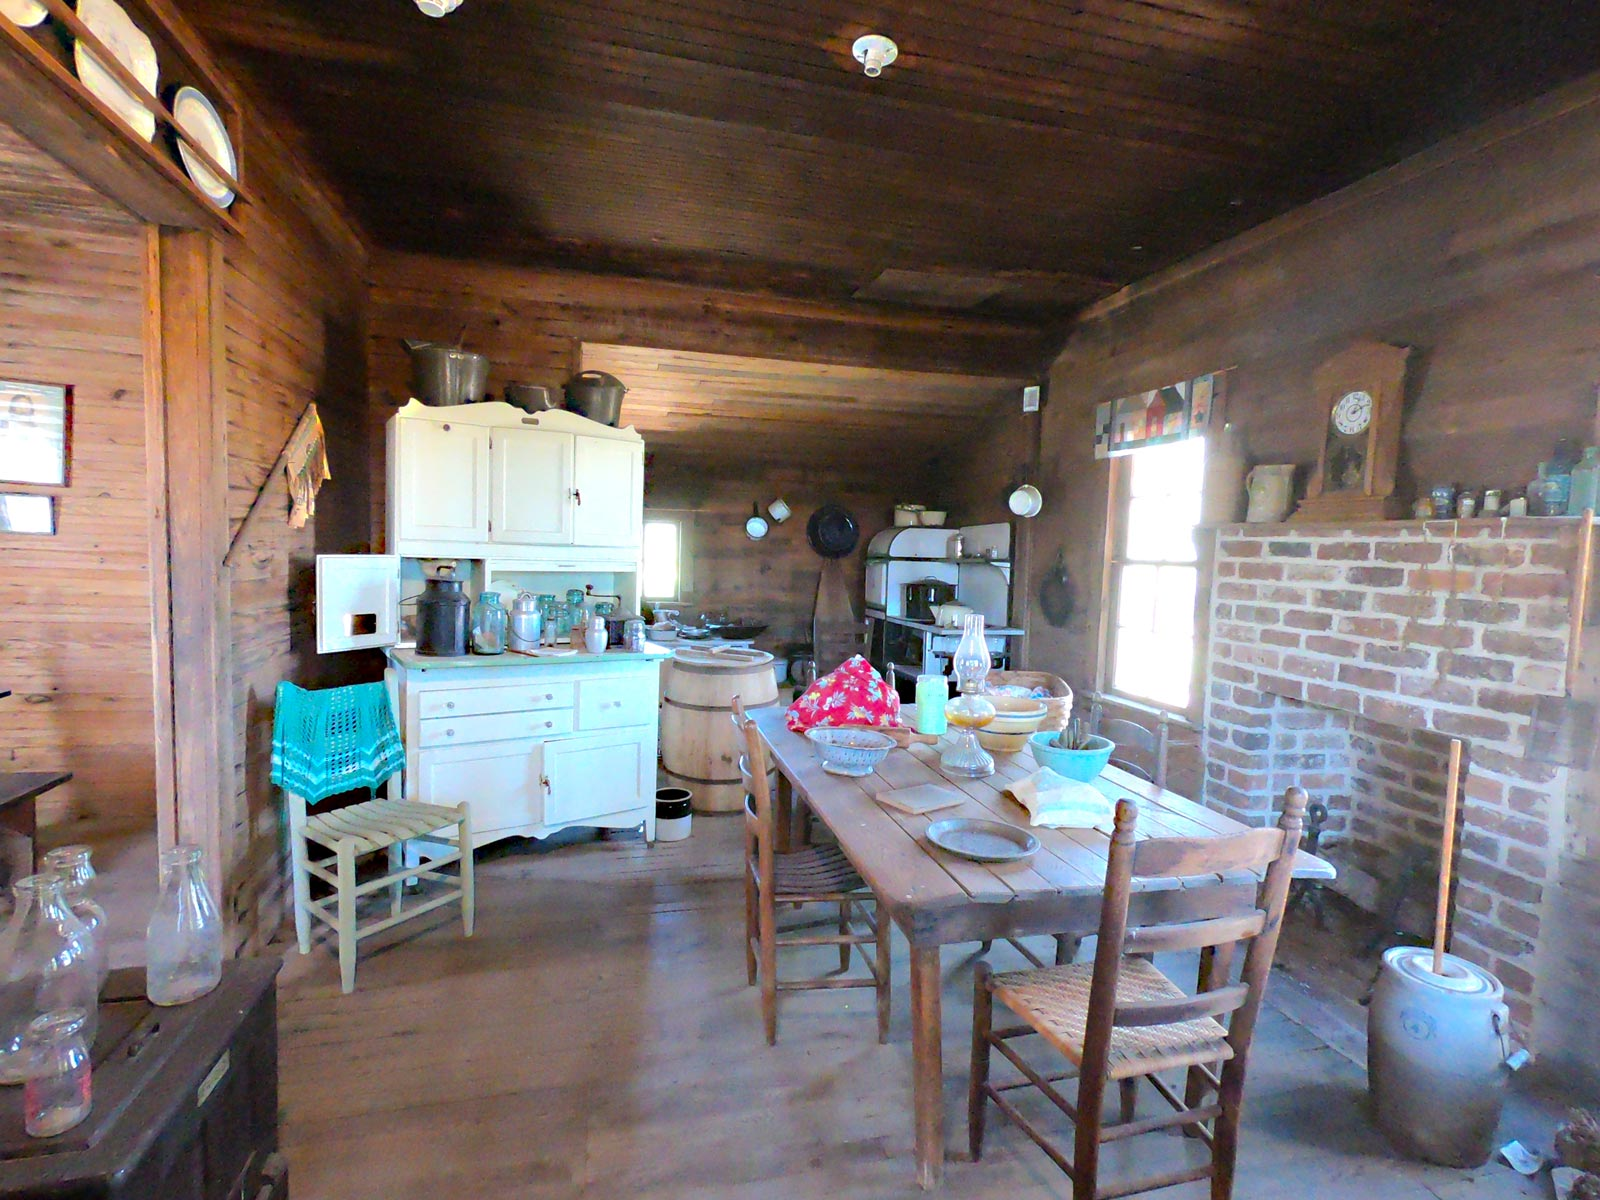 Iredell Brown Farmstead kitchen at the Tobacco Farm Life Museum, Kenly, North Carolina